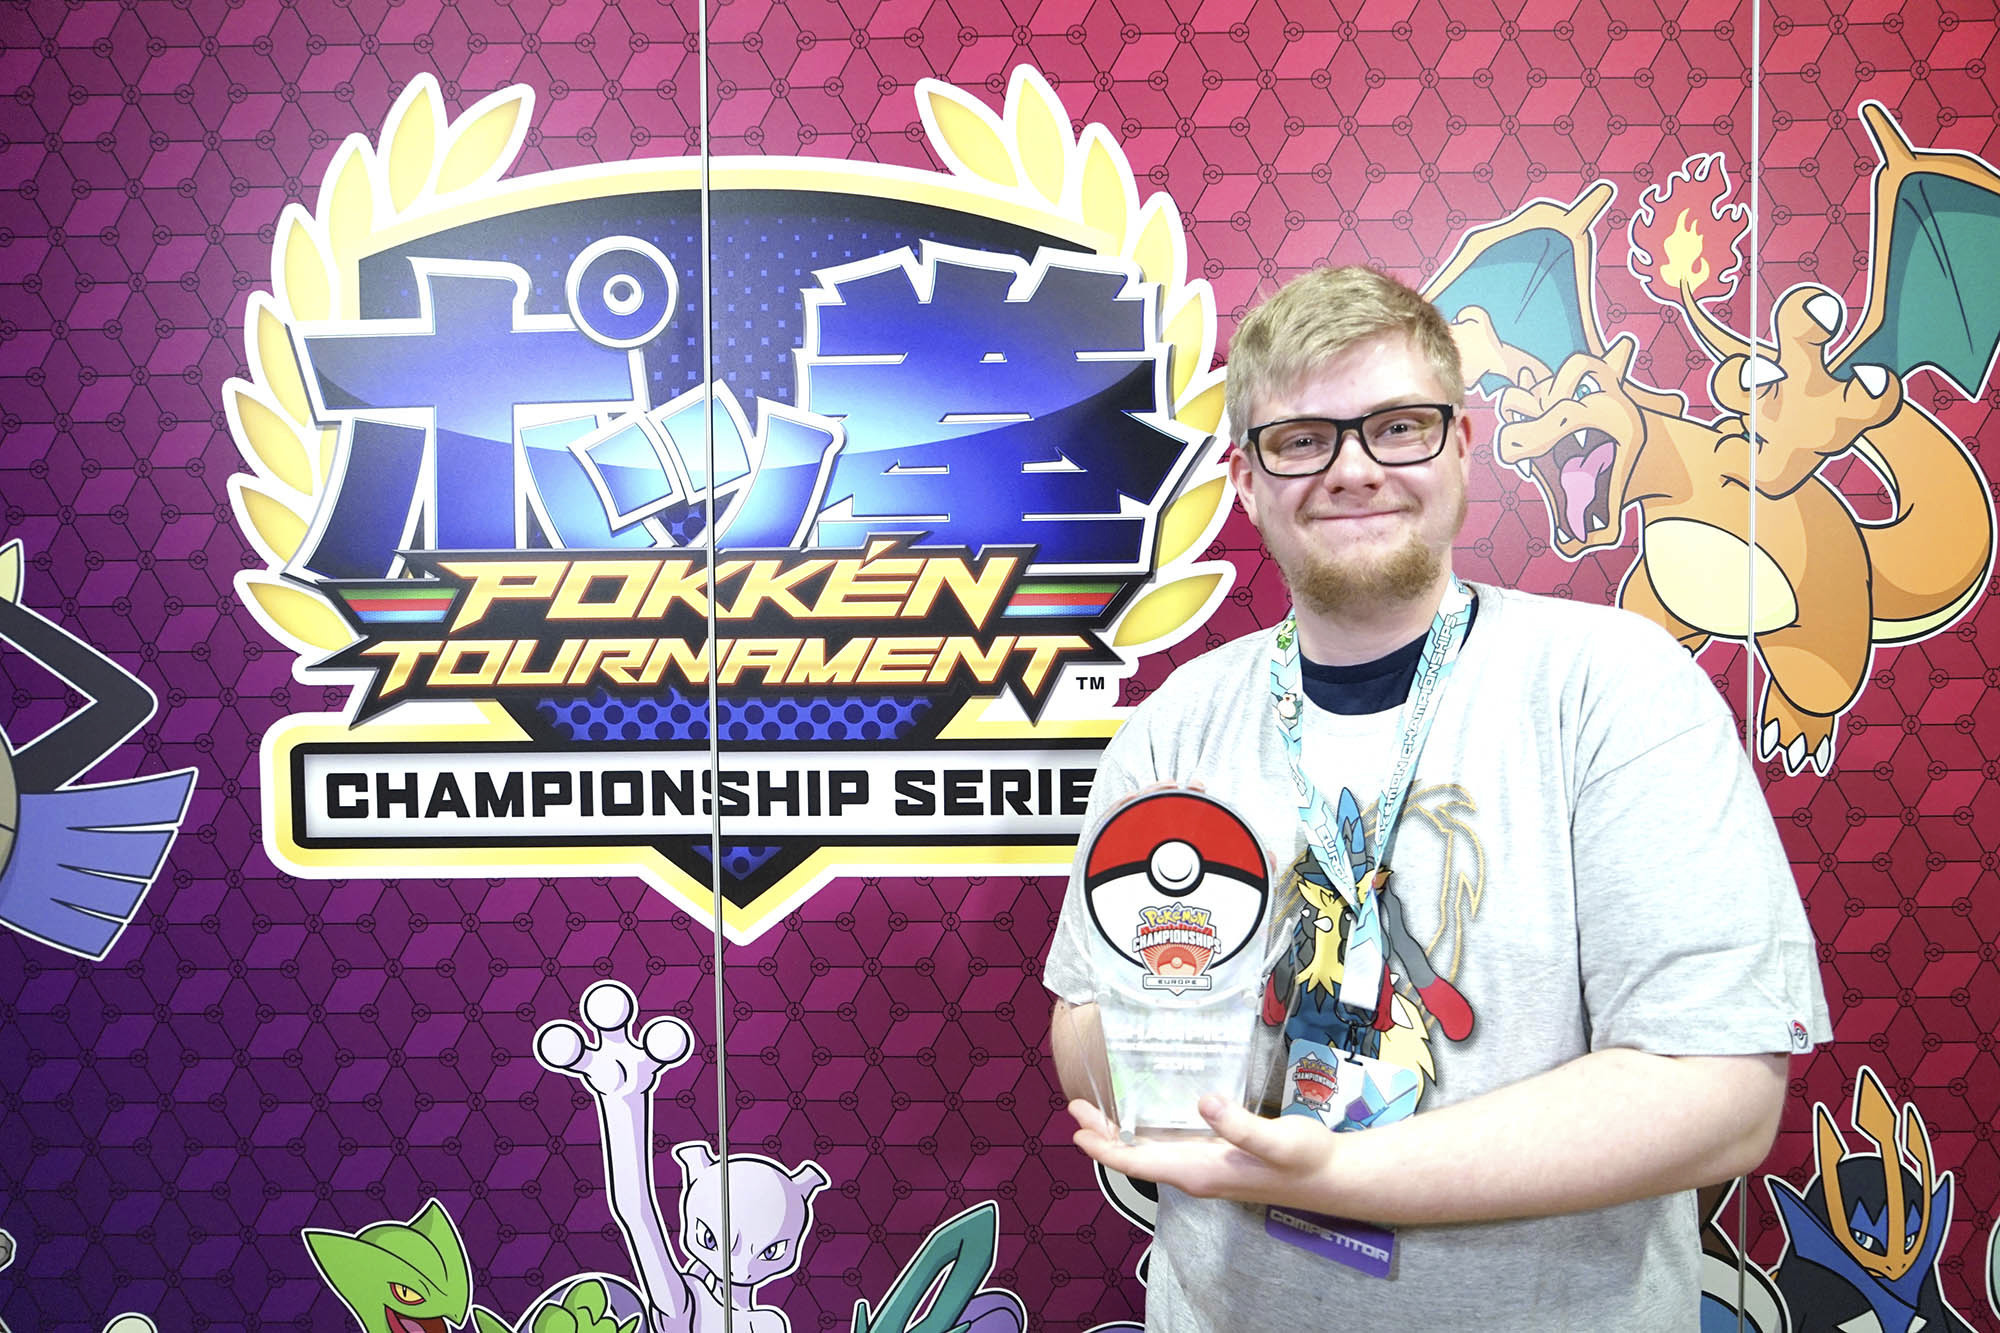 Pokken_Tournament_champion_Mantas_Michevicius